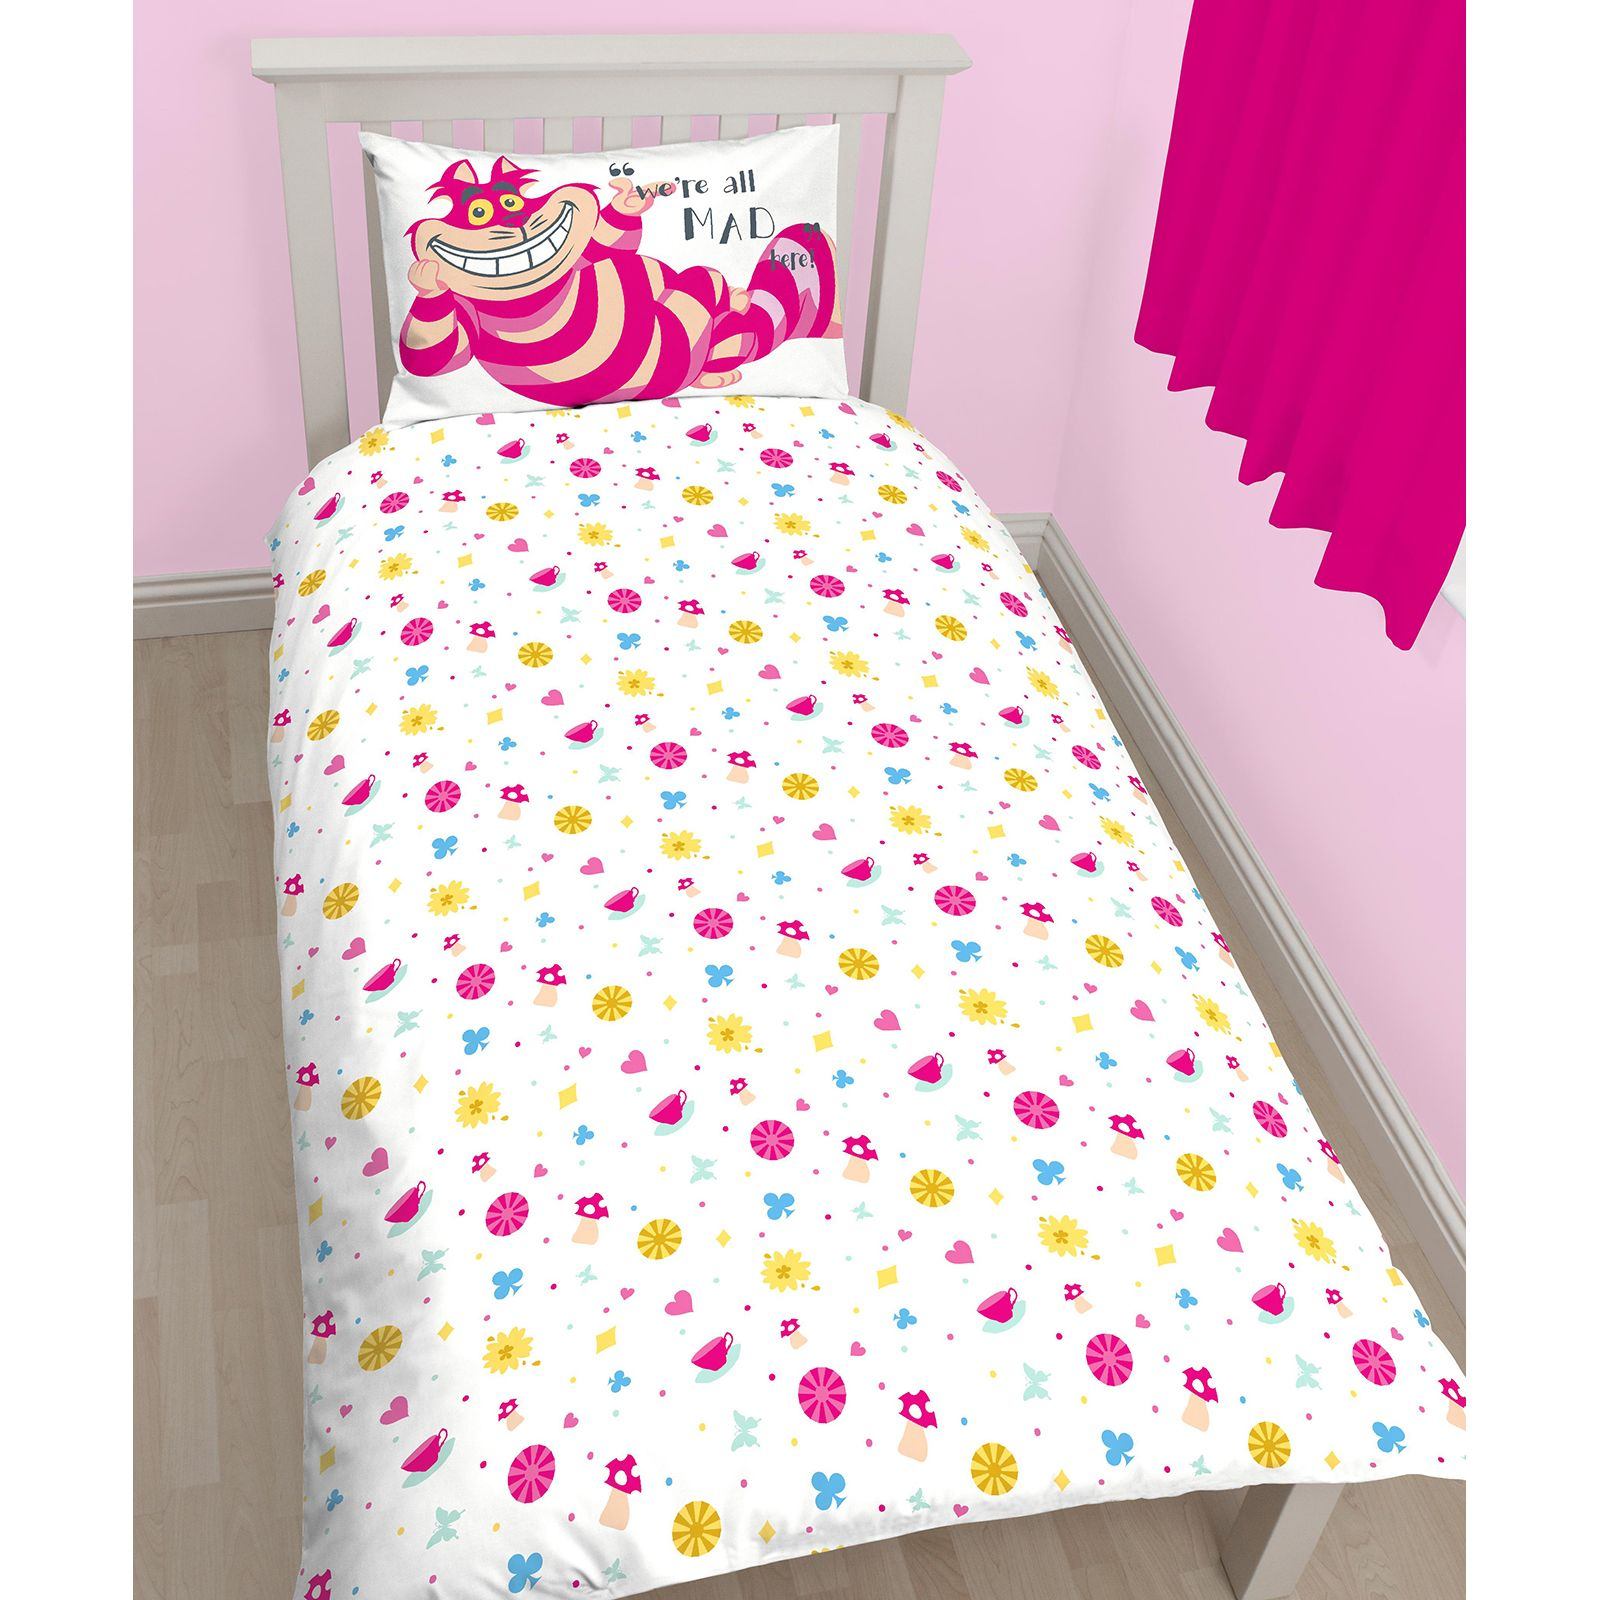 ALICE IN WONDERLAND CURIOUS SINGLE DUVET COVER WITH PILLOWCASE KIDS ...